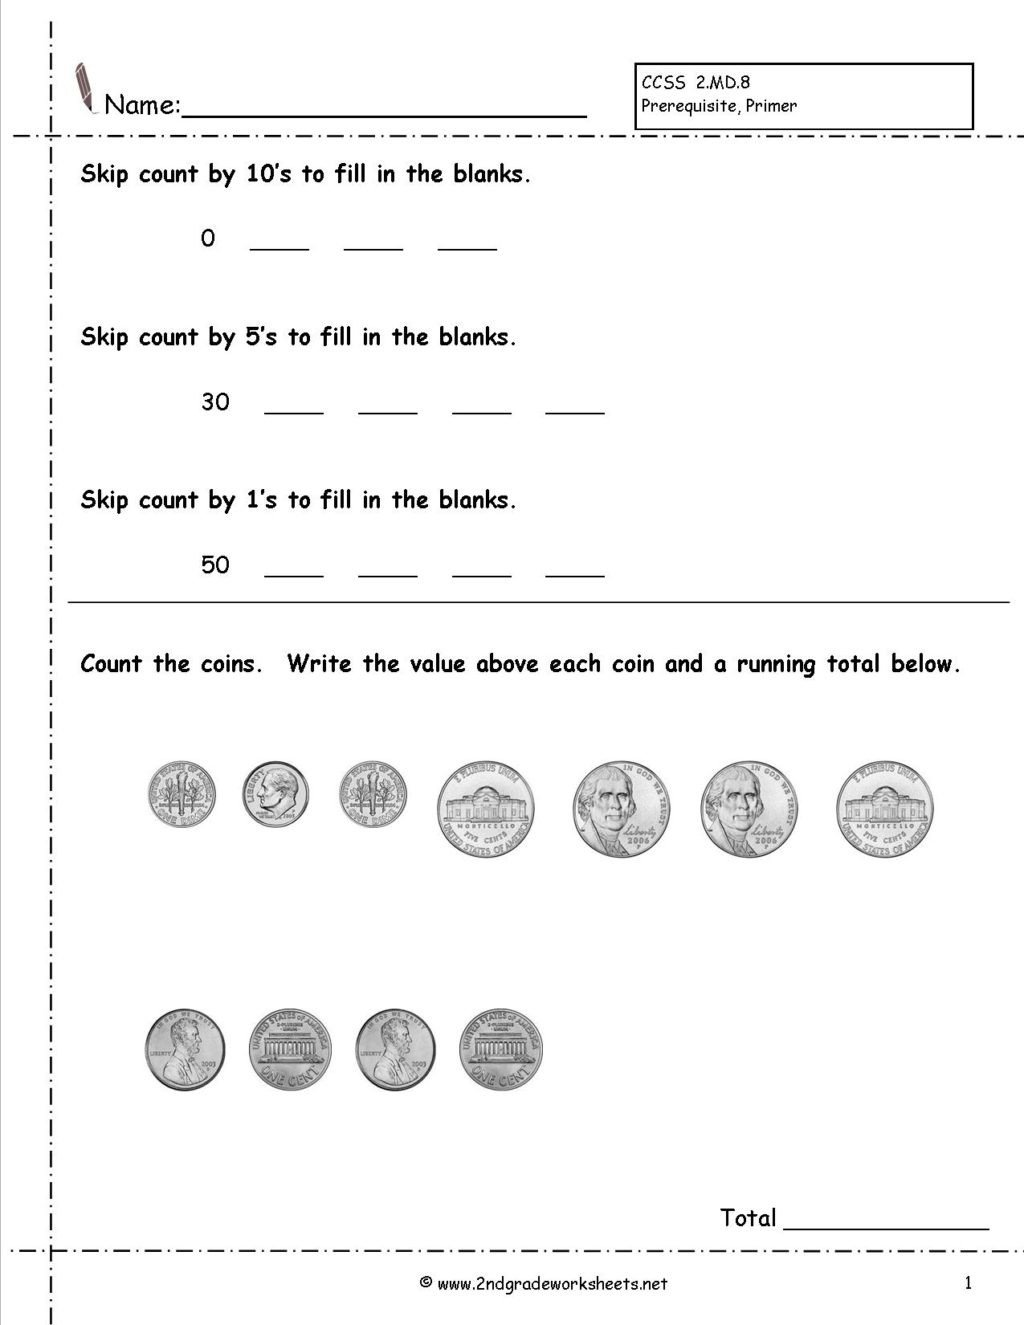 Counting Coins Worksheets First Grade Worksheet Money Word Problems 2nd Grade Image Inspirations